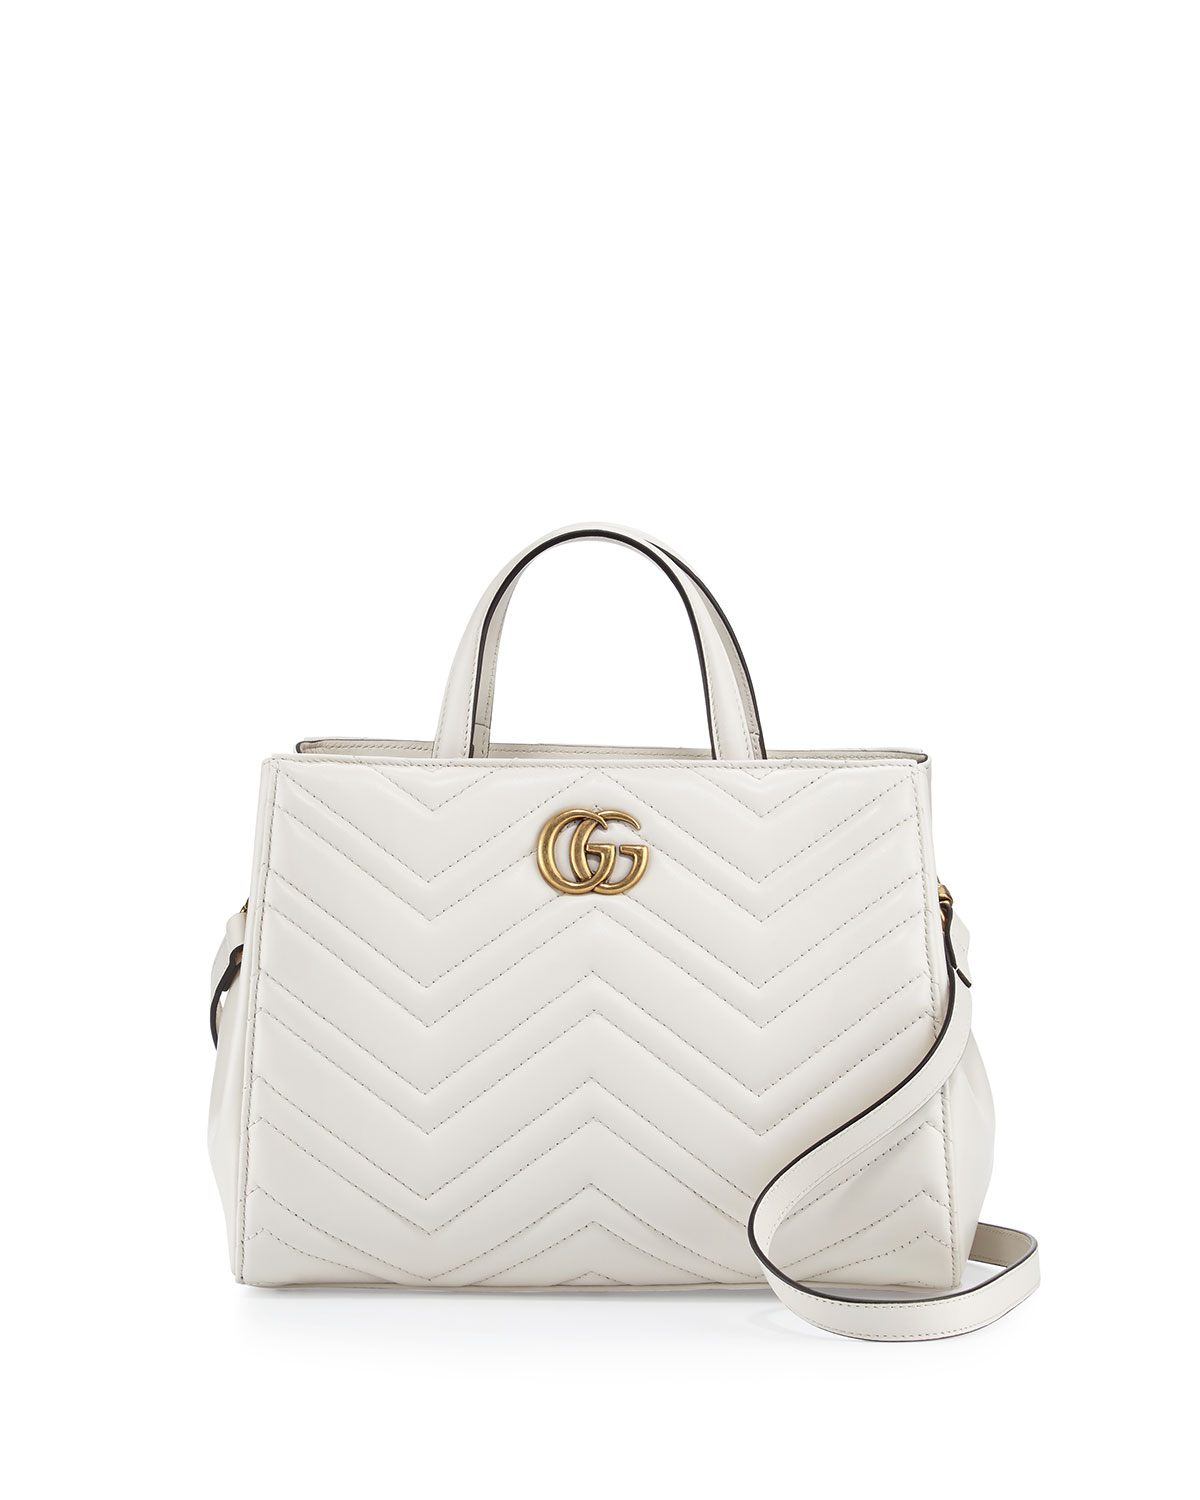 89f2468259c7 Gucci GG Marmont Small Matelassé Top-Handle Bag, White | Neiman Marcus